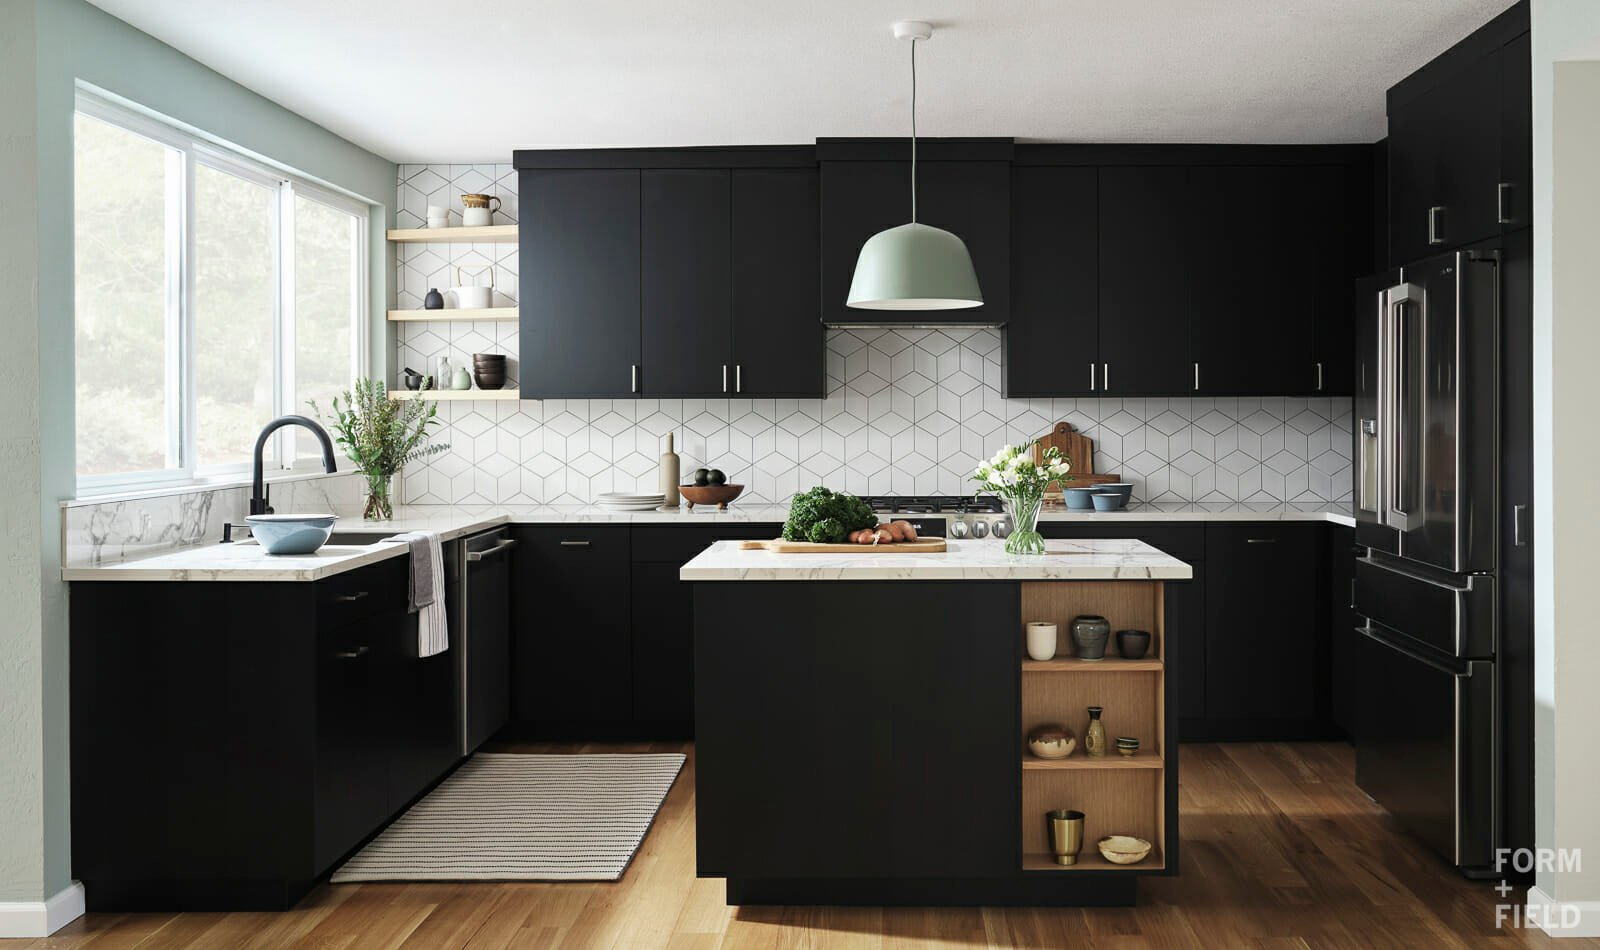 Scandinavian kitchen by san francisco interior designer Christine Lin